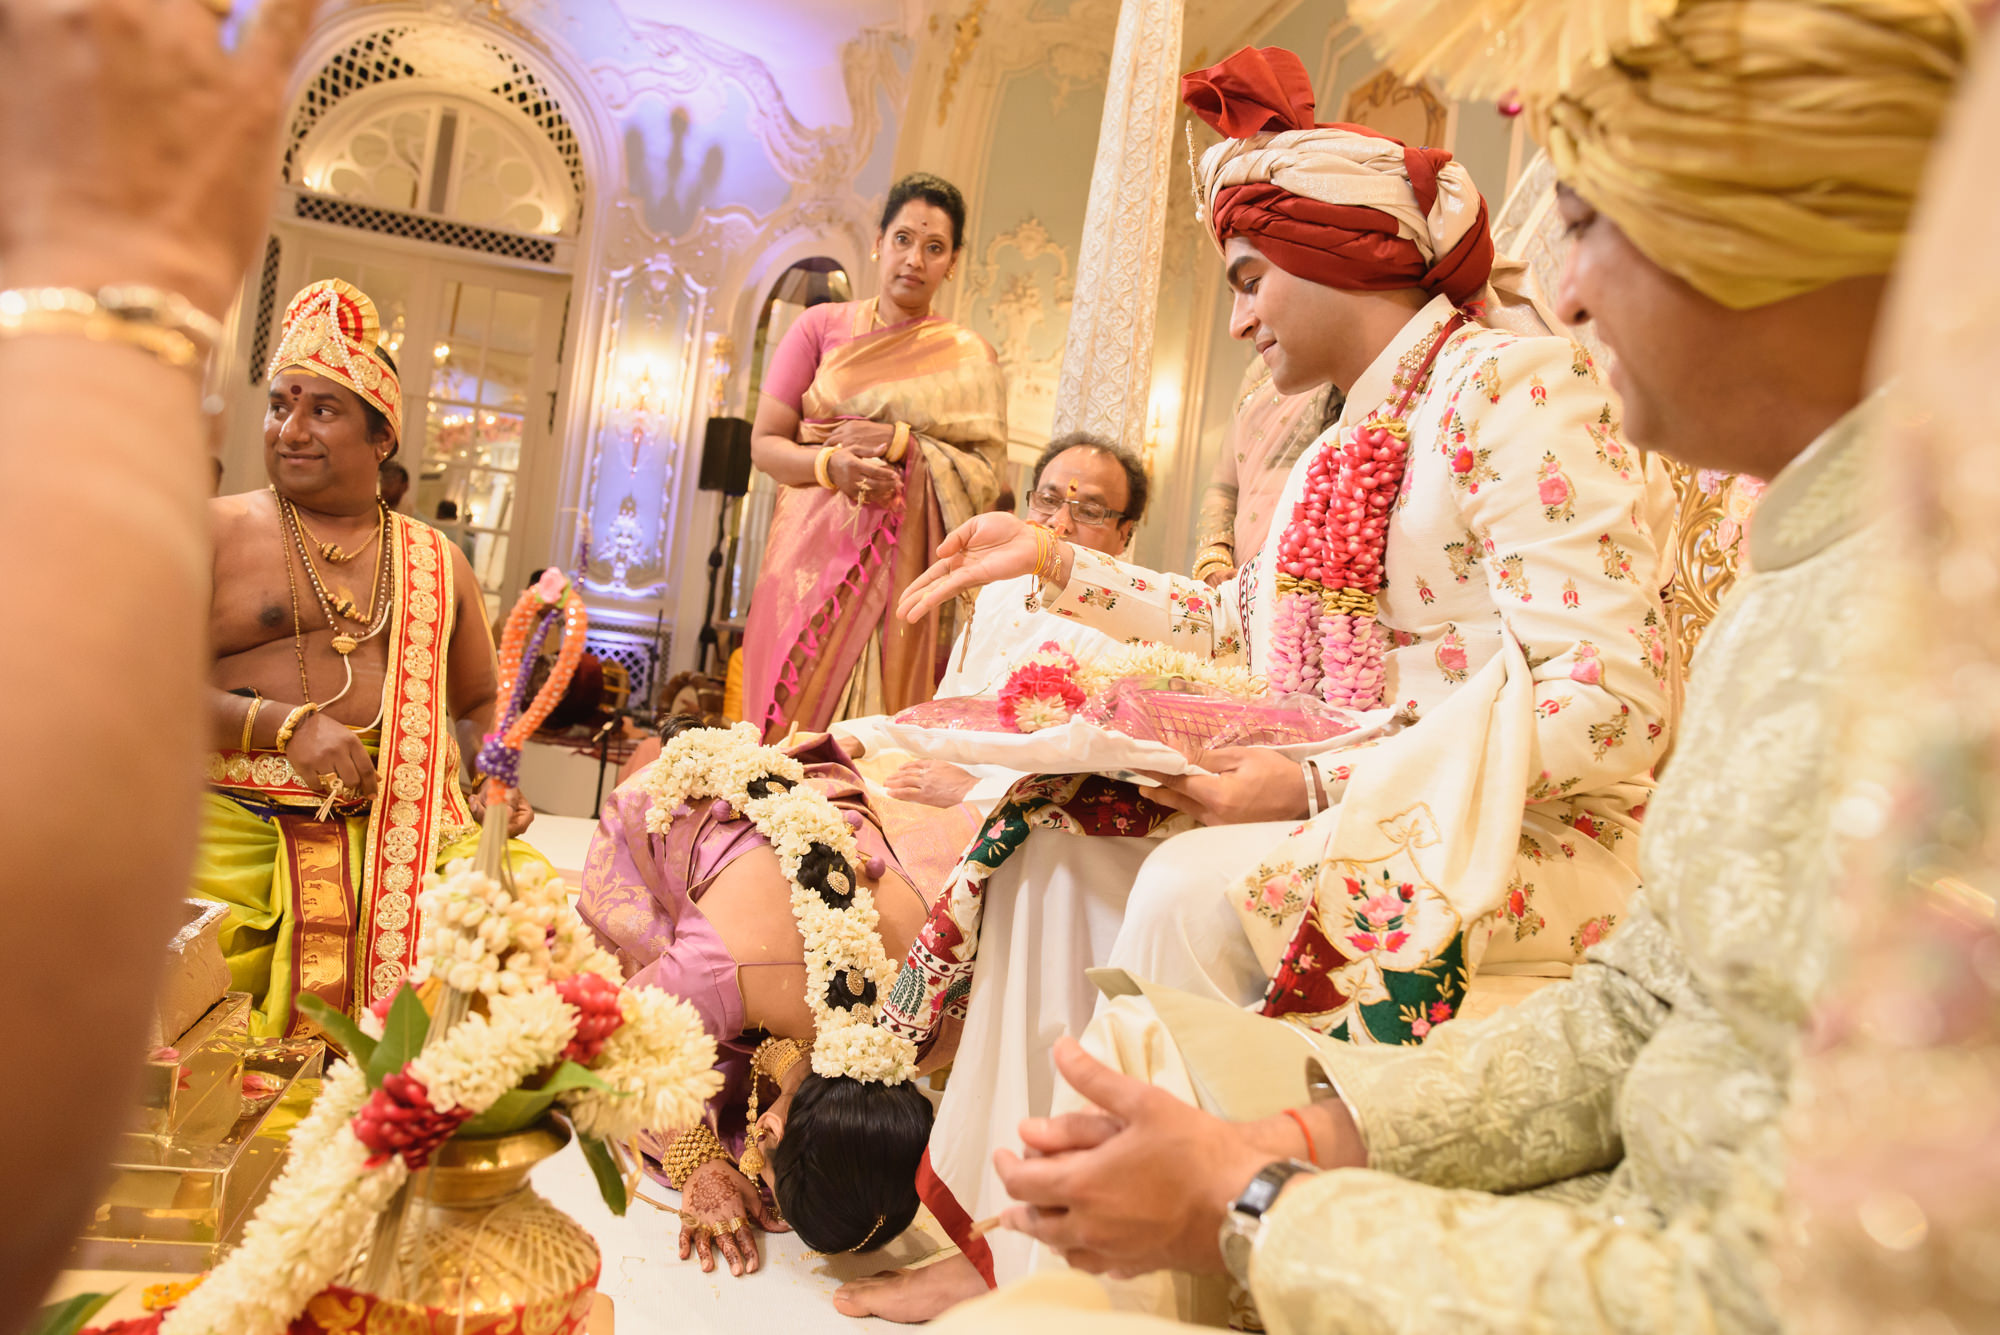 Tamil Gujrati hindu wedding photography photographer london the savoy -49.jpg